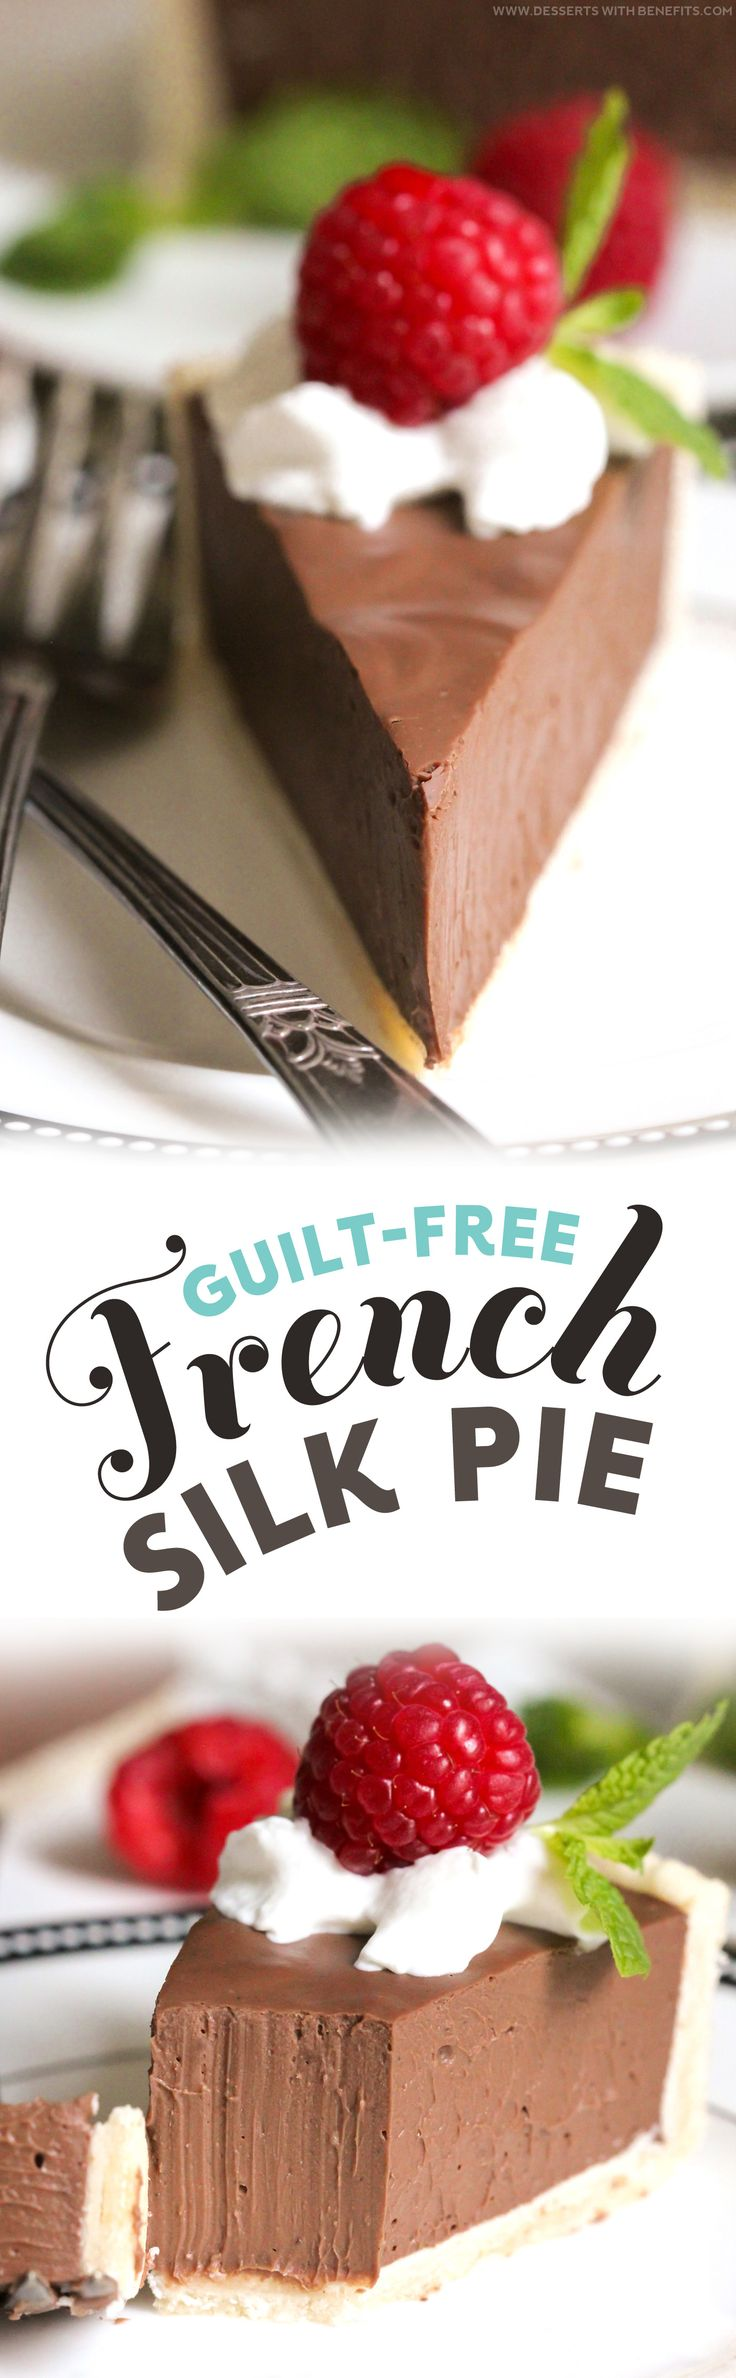 This Guilt-Free French Silk Pie is the ULTIMATE pie for the chocolate-lover in you — it's incredibly rich and creamy and sweet and chocolatey.  It'll satisfy your sweet tooth and chocolate craving in one fell swoop!  One bite and you'd never believe it's guilt-free.